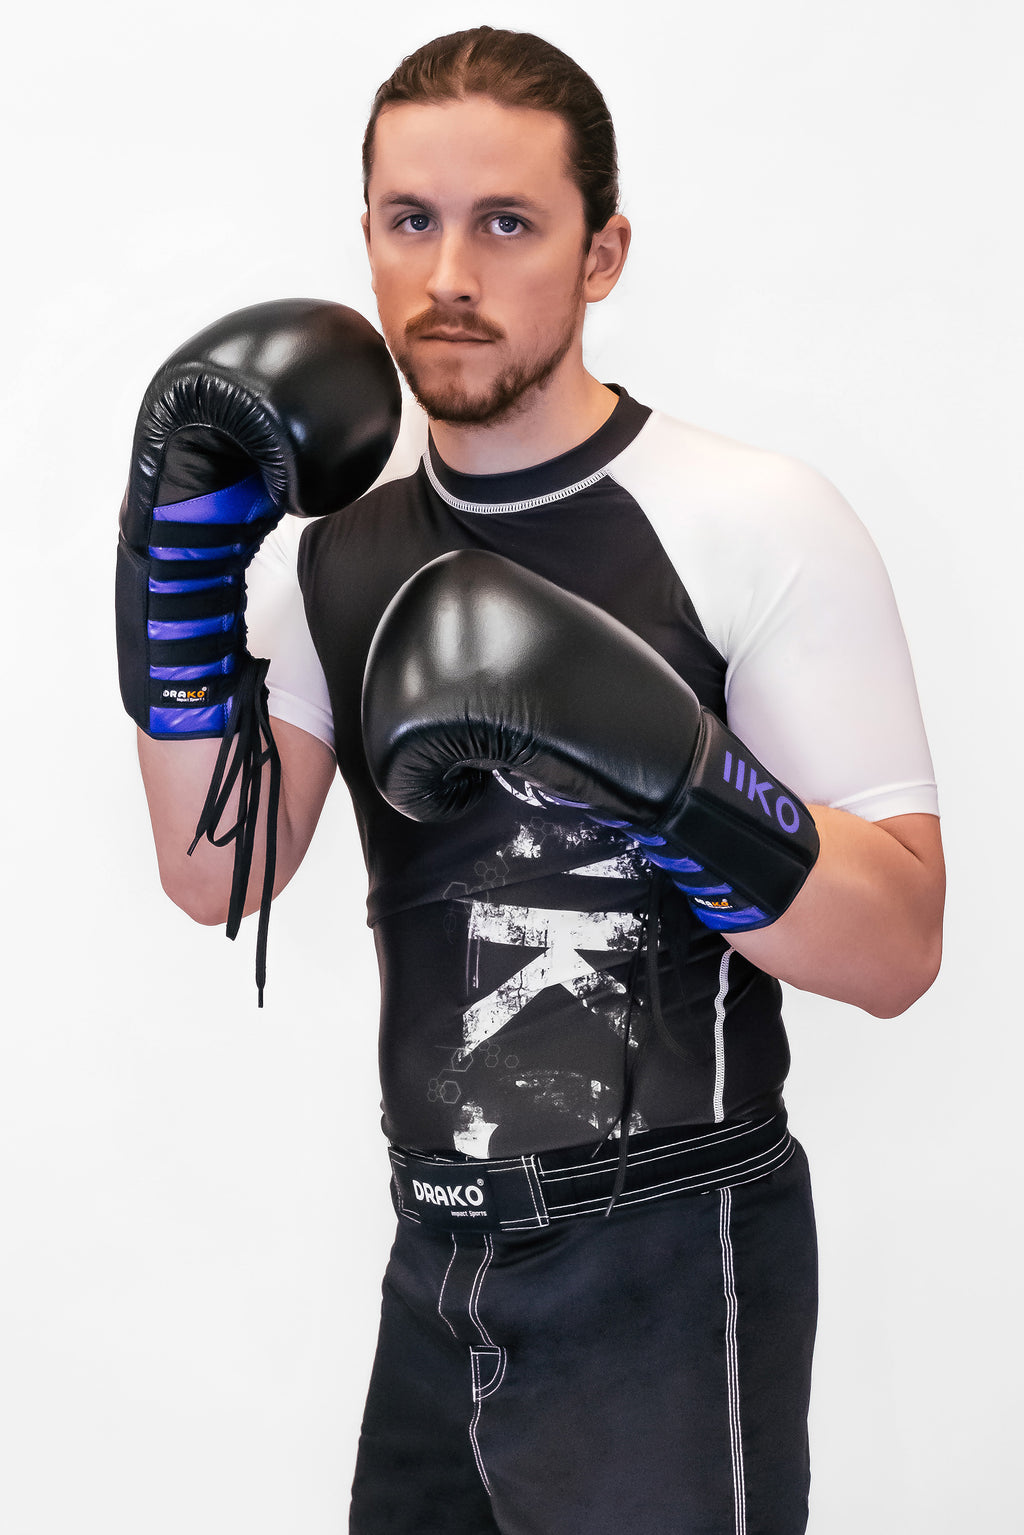 DRAKO NRX EXPERT LACE UP BOXING GLOVES